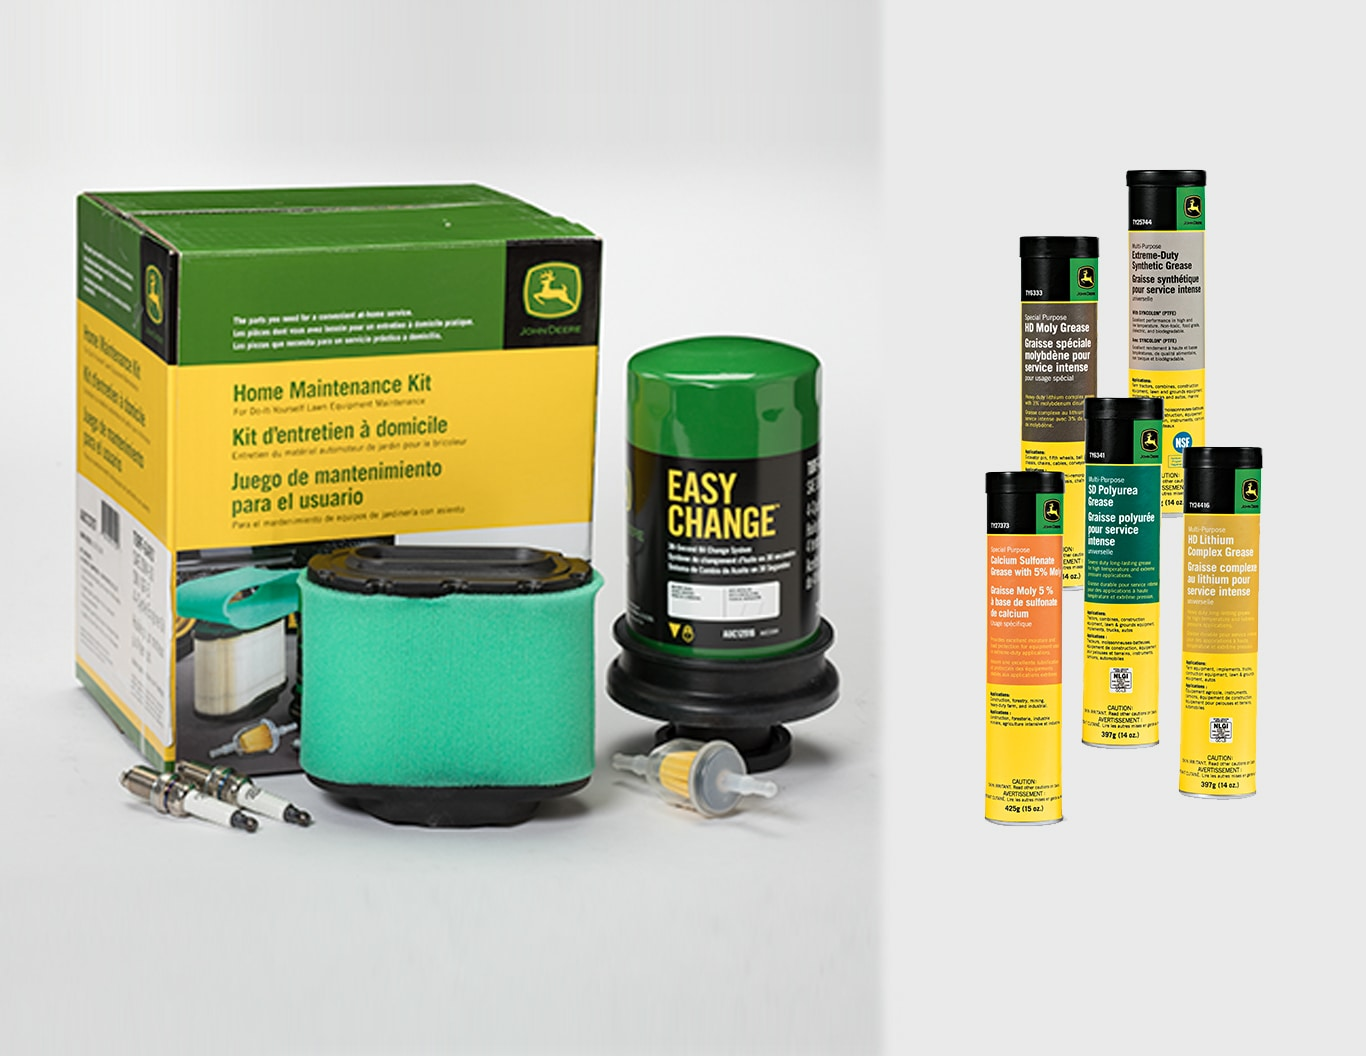 Home Maintenance Kits | Lawn and Garden Parts | JohnDeere com